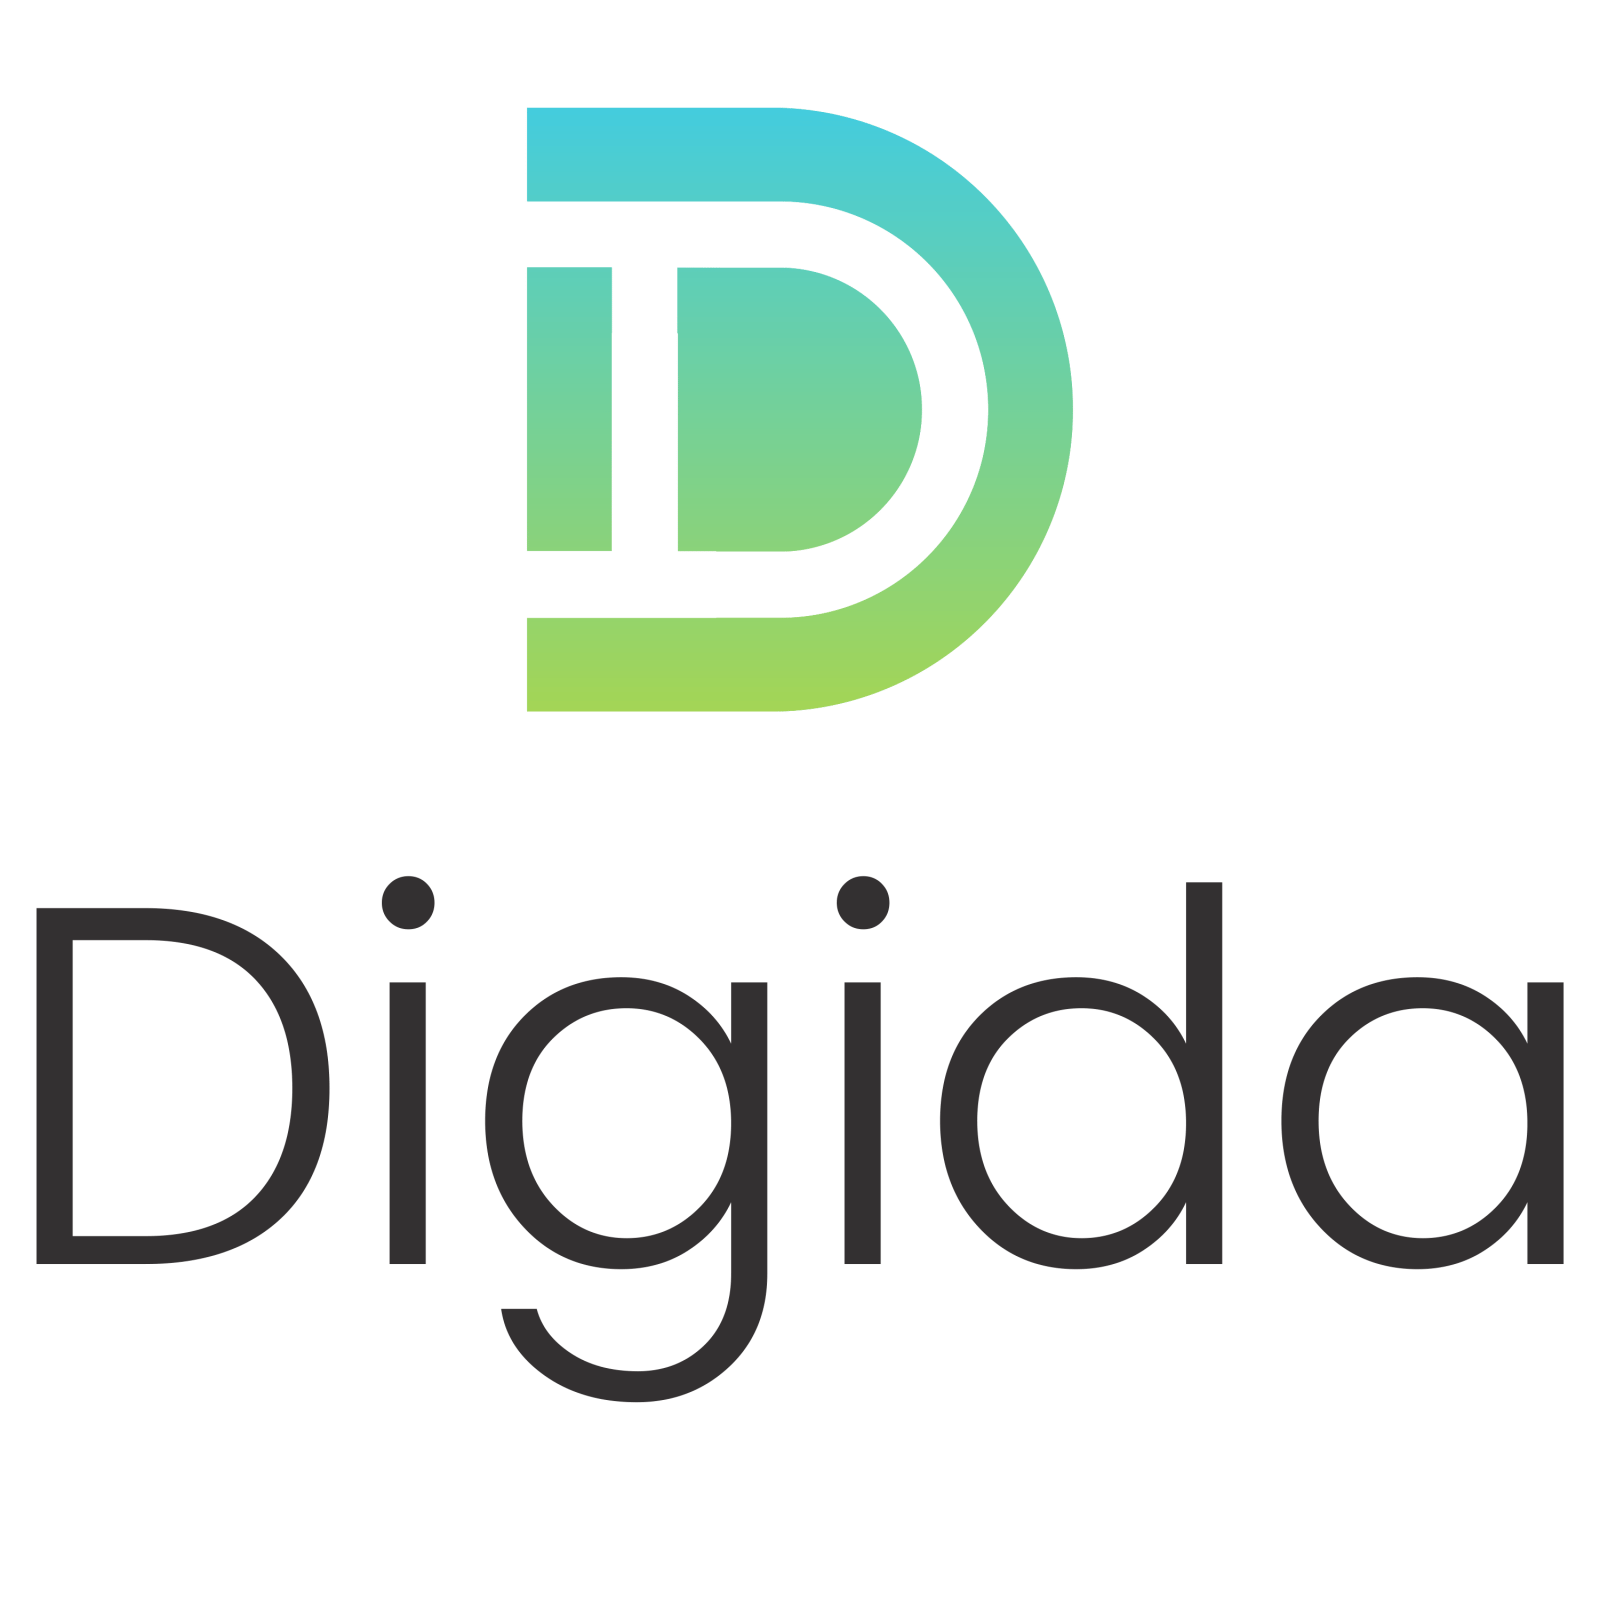 Digida: Branching Out